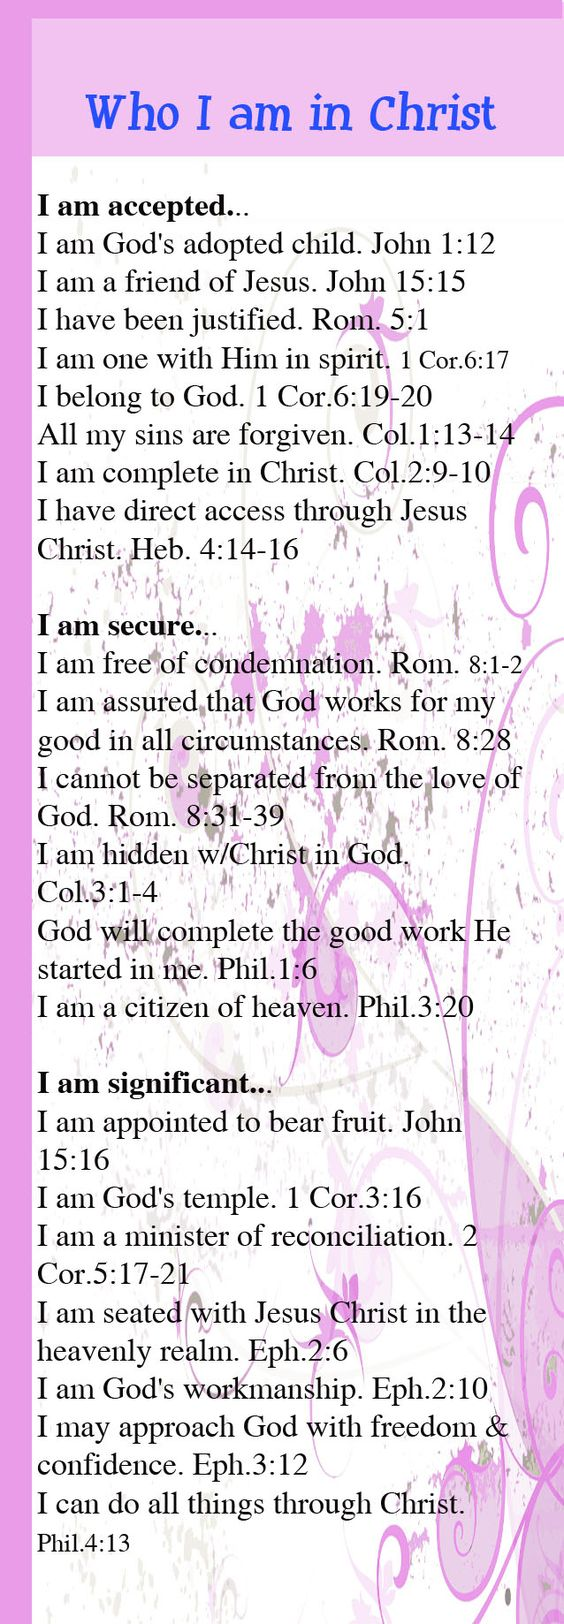 You-are-accepted-secure-and-significant-with-christ-Jesus-The-Lord-has-accepted-you-and-will-always-guide-and-protect-you.